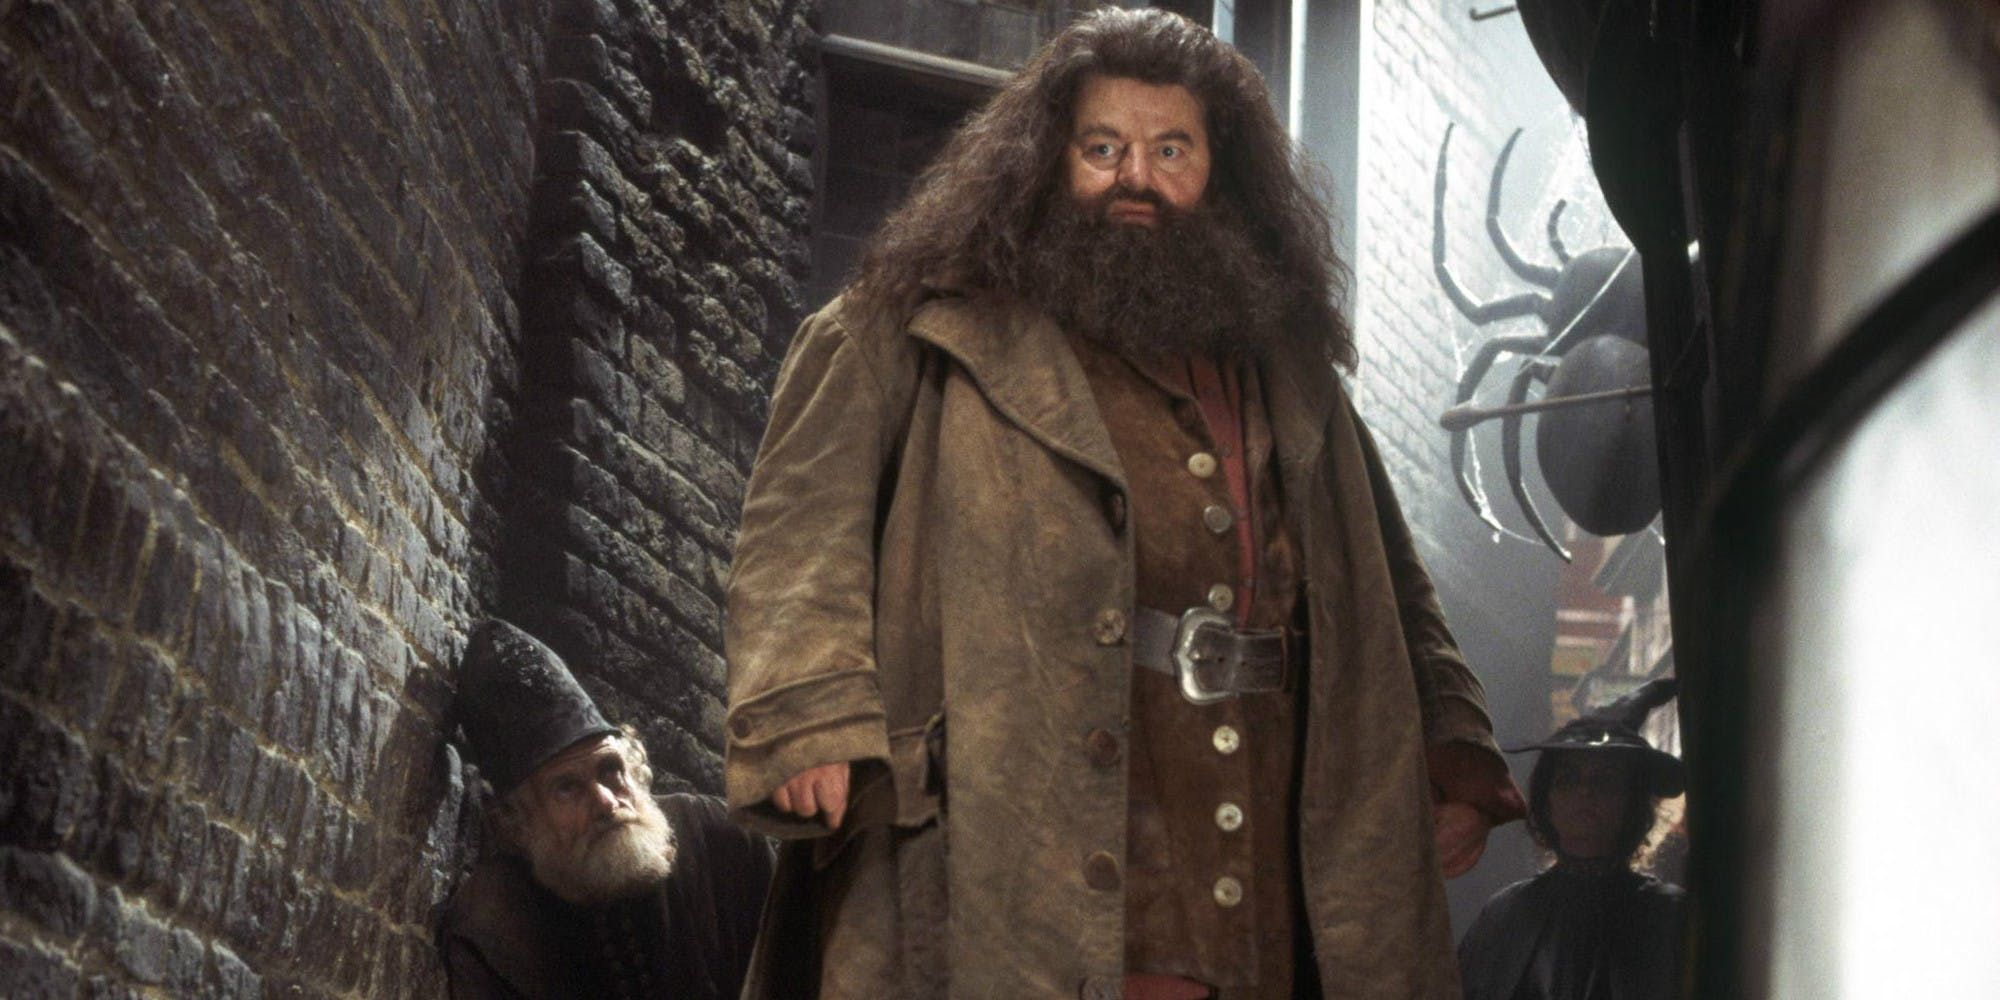 Harry Potter's Hagrid was actually a Death Eater working for Voldemort, according to a wild fan theory